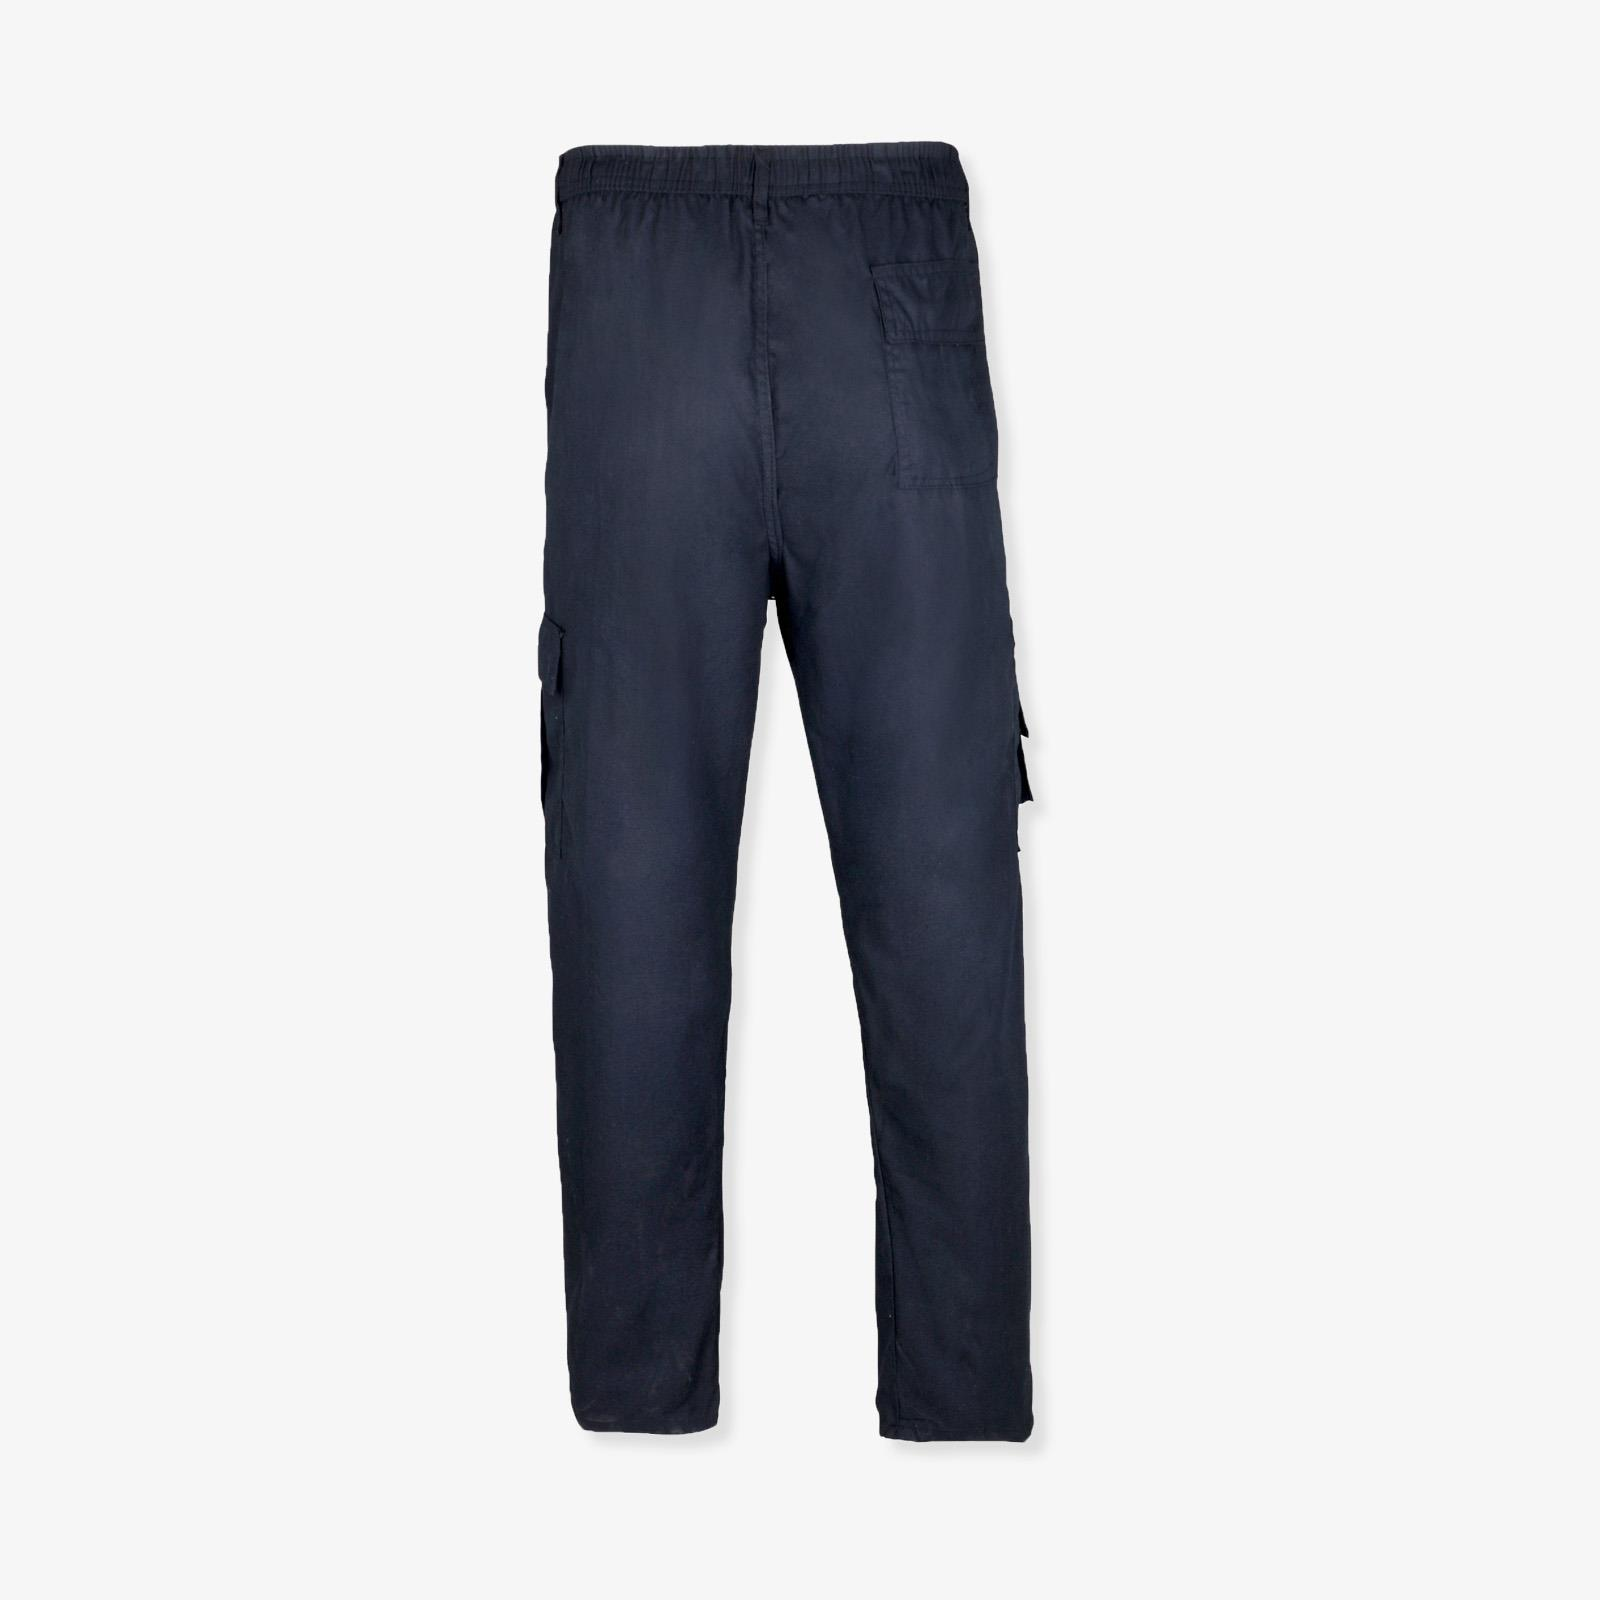 Mens Work Cargo Trousers Chinos Plain Casual Cotton Regular Combat Pants Pockets